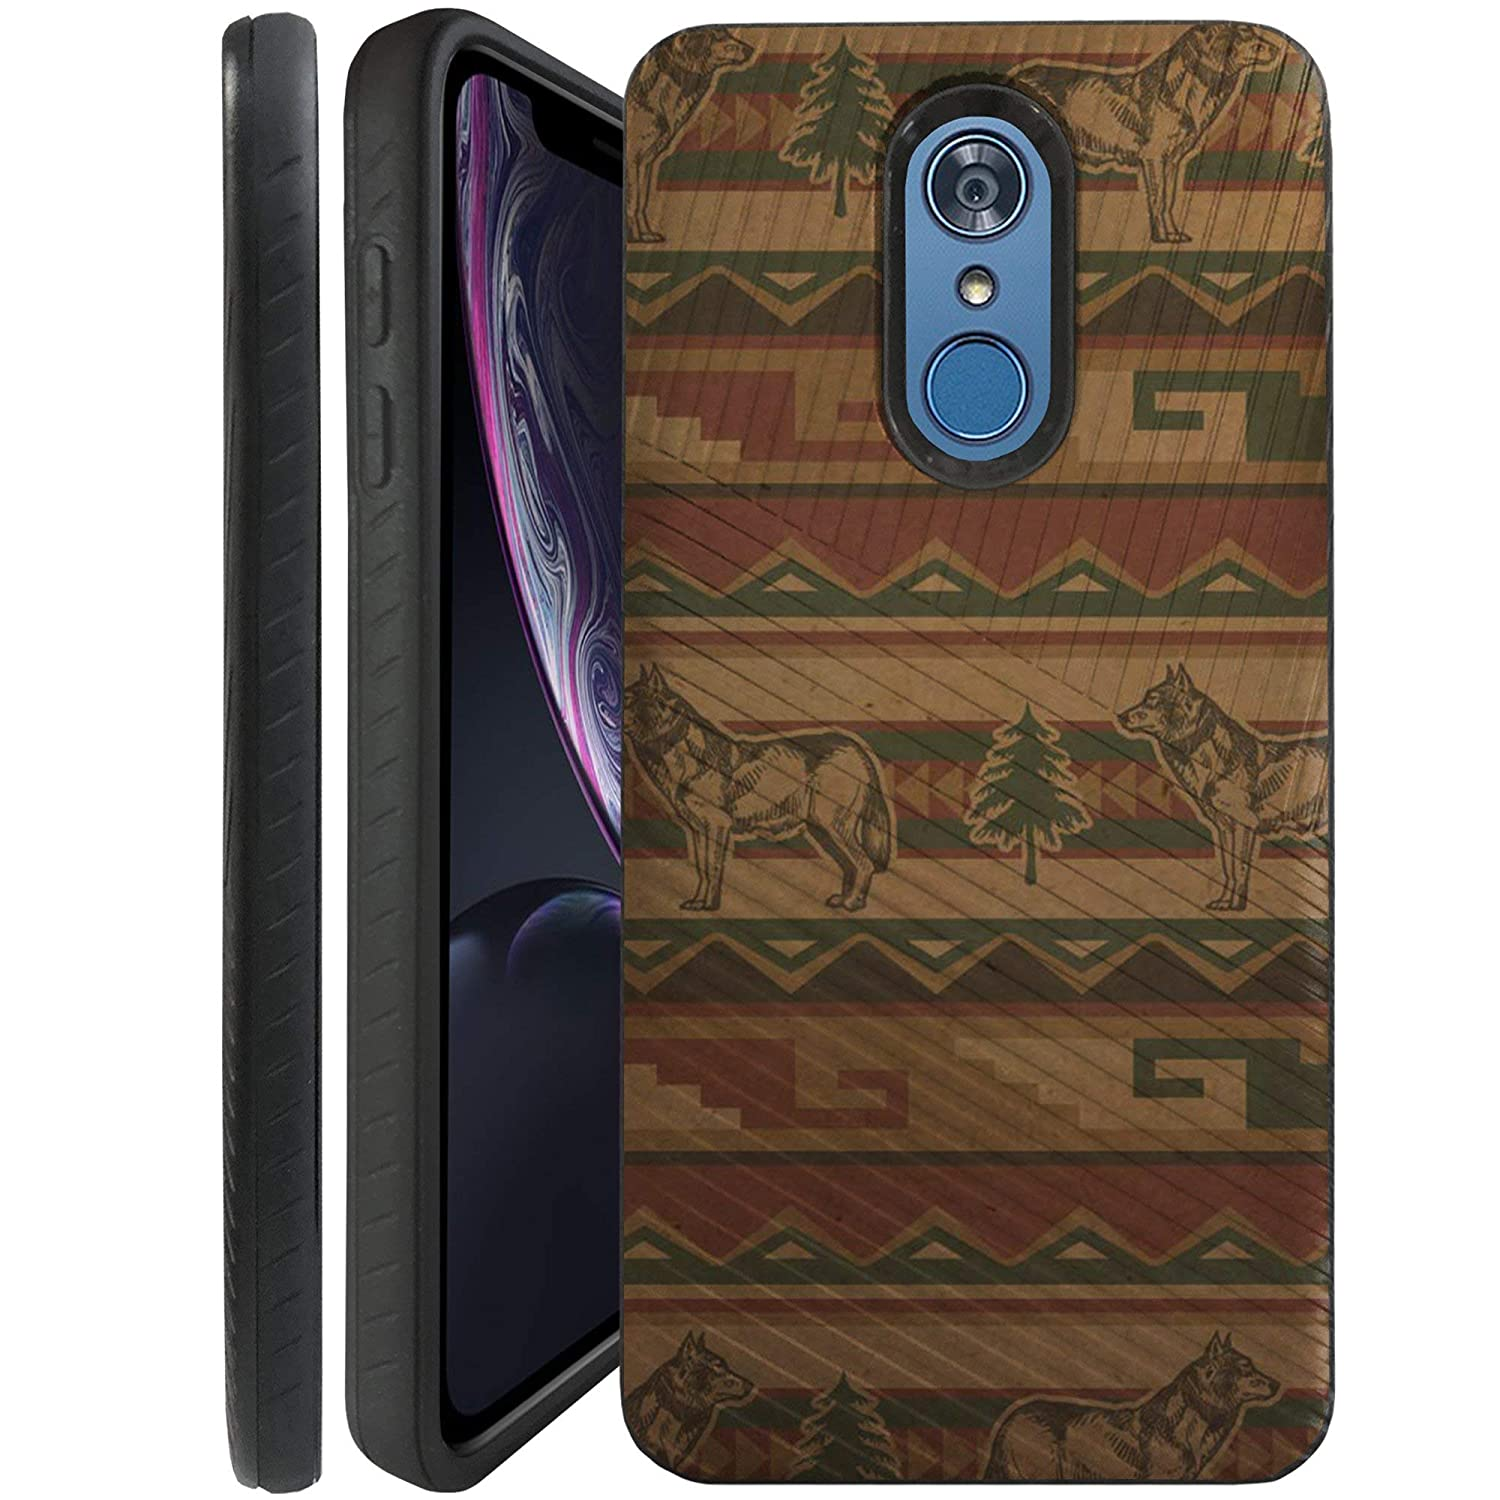 CasesOnDeck Case Compatible with [LG Q7 | LG Q7+] LG Q7 Plus Case, Dual Layer Hybrid Combat Shock Shell Embossed Strip Case Cover (Wolf Chevron)